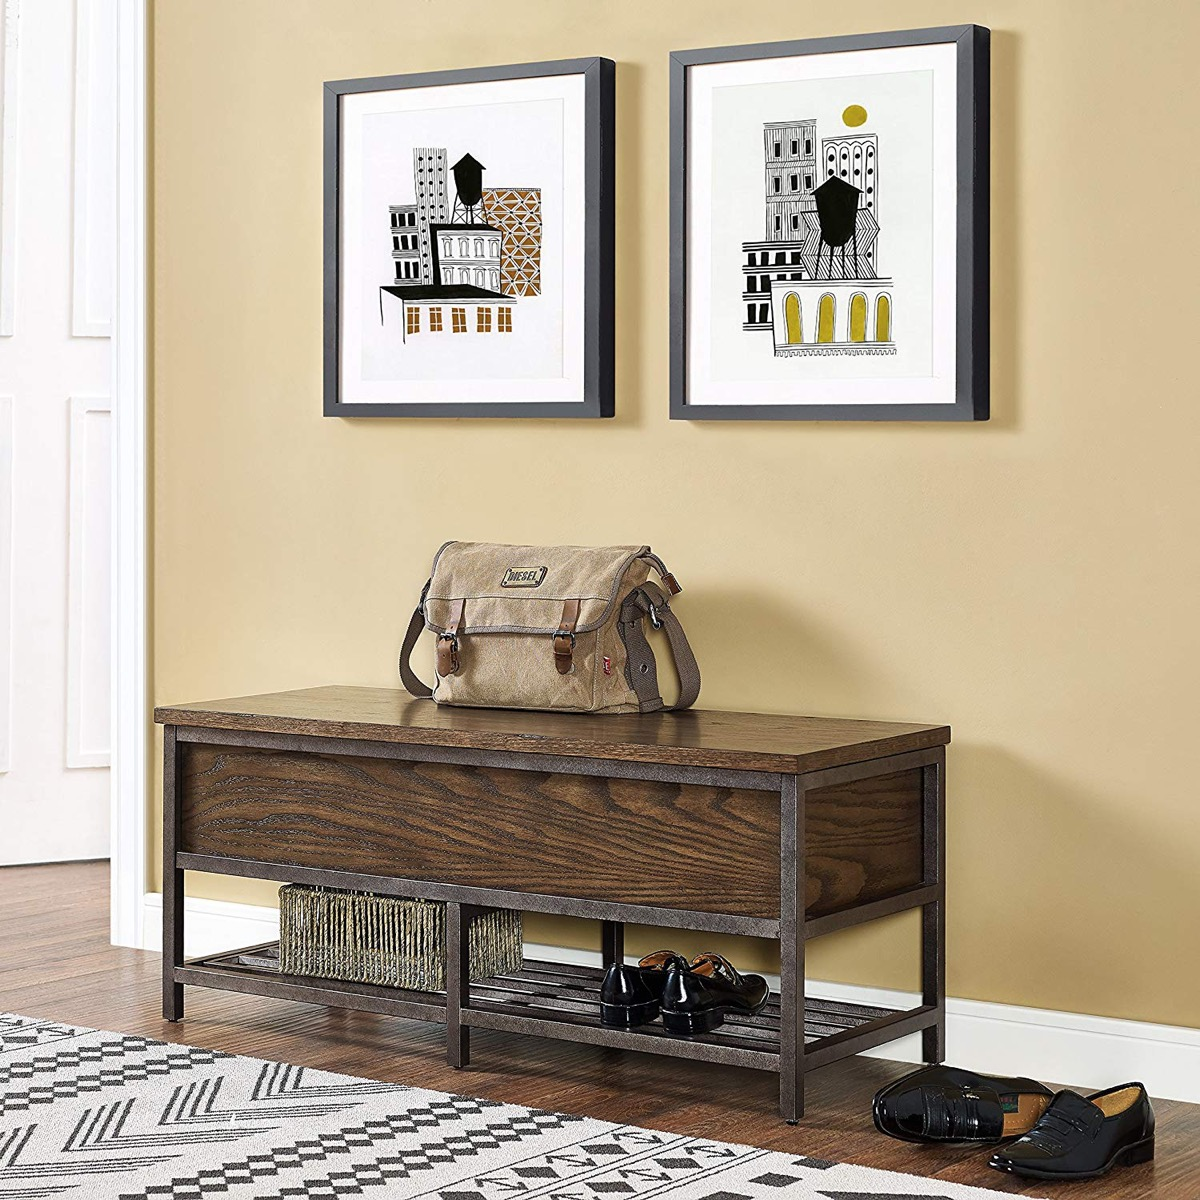 Rustic-Industrial-Entryway-Bench-Wood-And-Metal-Espresso-Finish